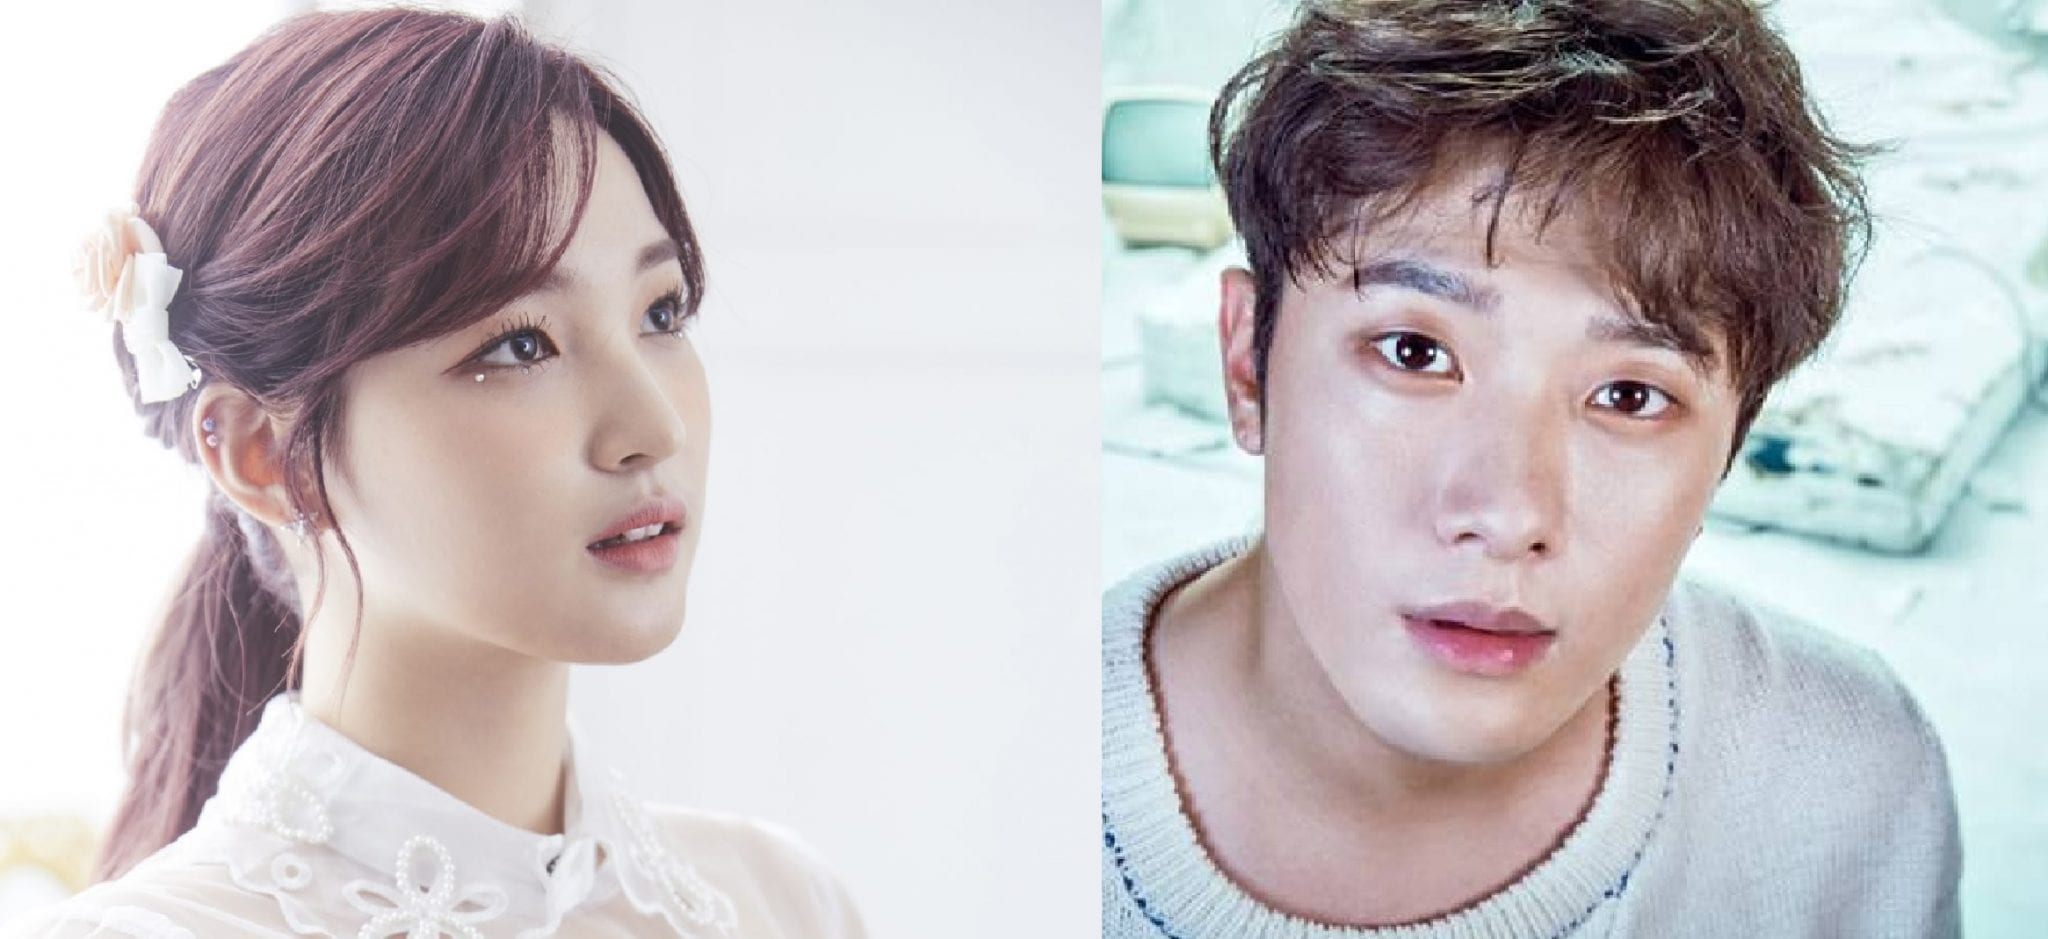 LABOUM's Yulhee And FTISLAND's Minhwan Confirmed To Be Dating